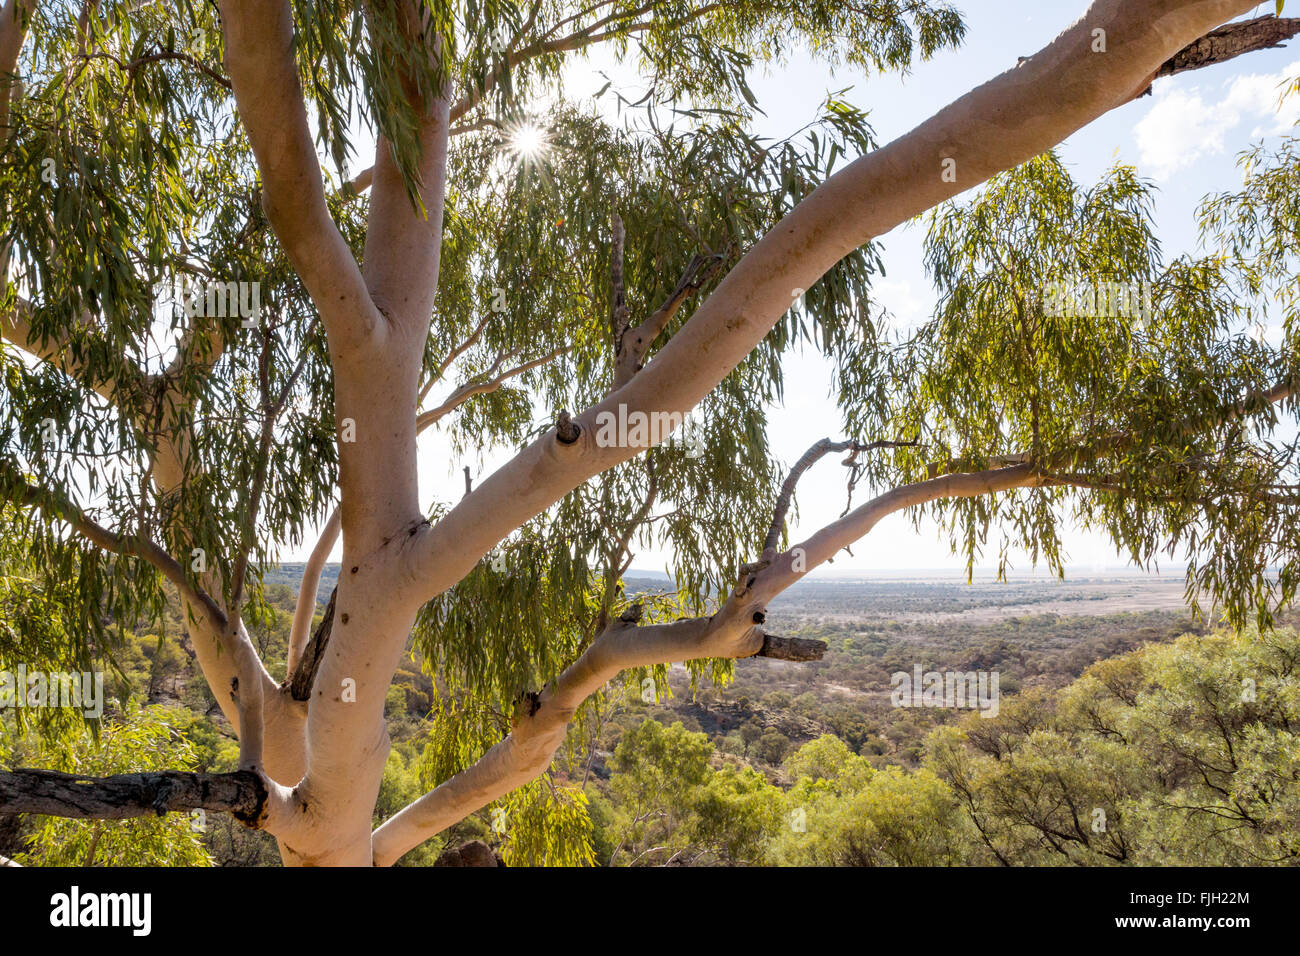 Looking into the canopy of an Australian gum (eucalyptus) tree in the outback near Winton Queensland & Looking into the canopy of an Australian gum (eucalyptus) tree in ...